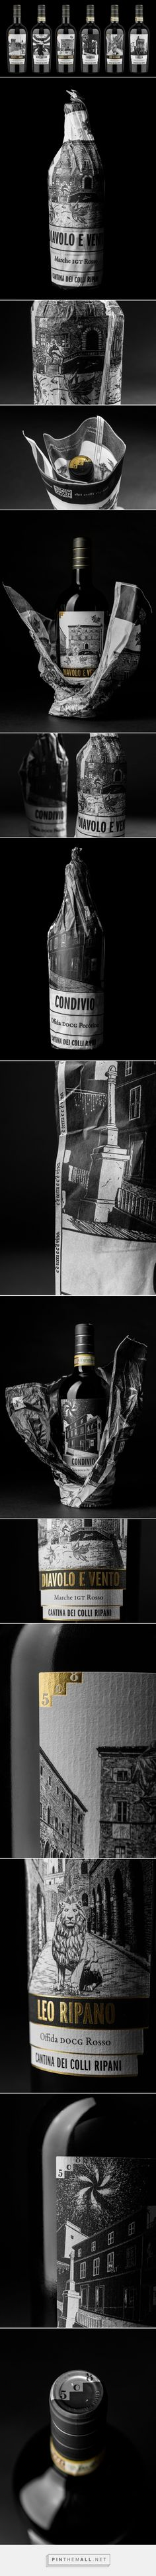 508 Collection wine packaging design by Andrea Castelletti - https://www.packagingoftheworld.com/2018/06/508-collection.html